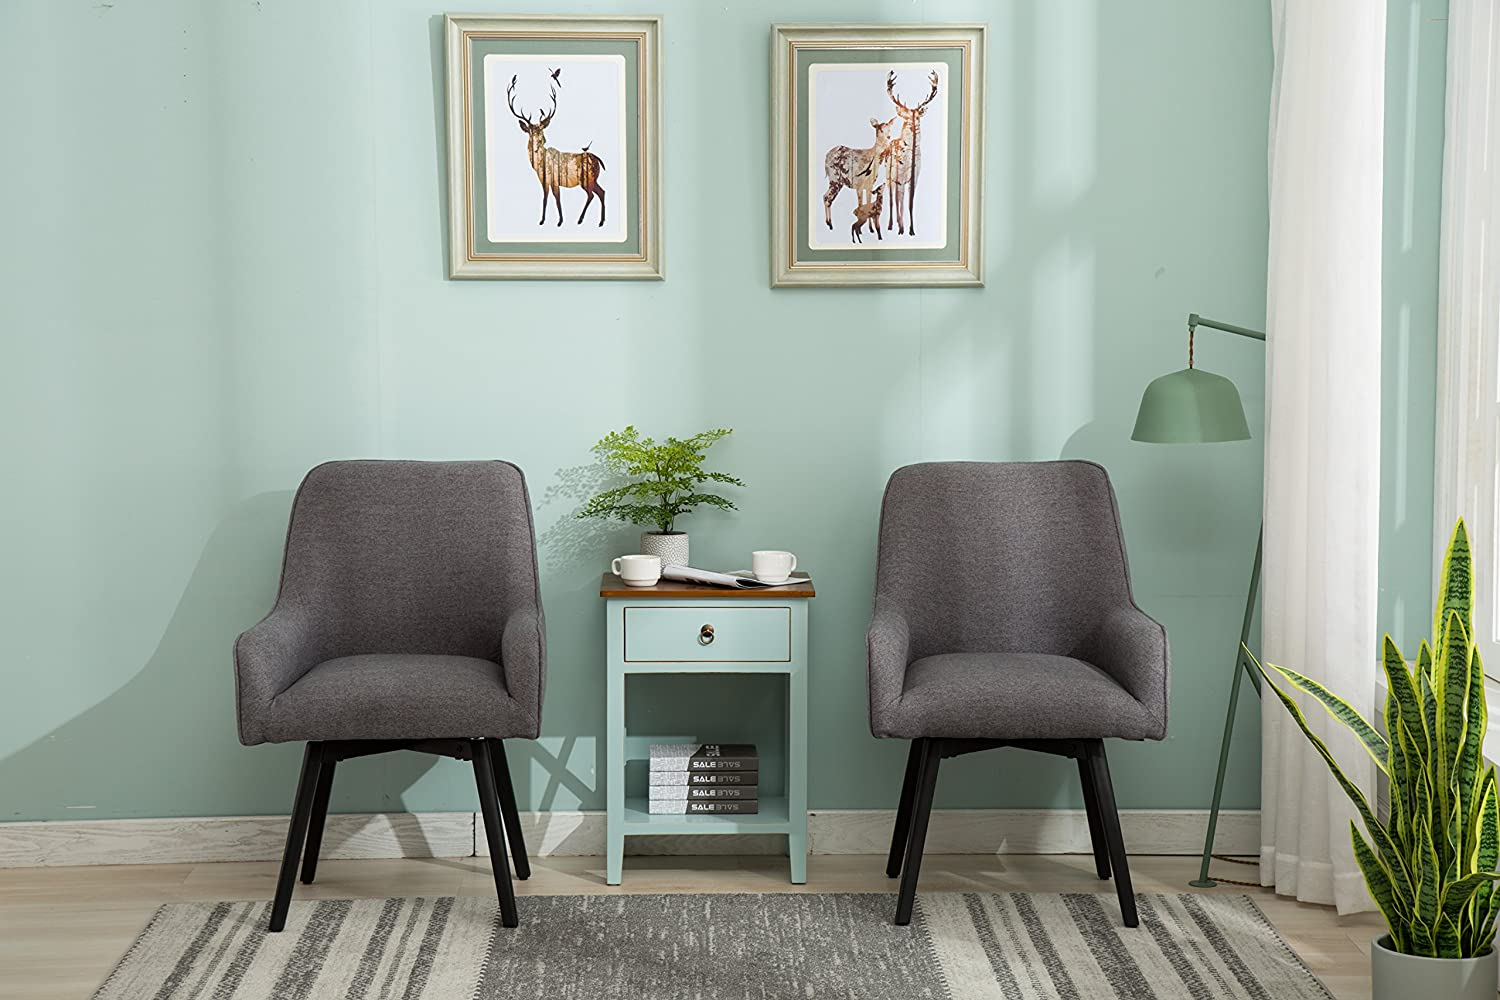 Kitchen Swivel Dining Chair with Sturdy Metal Legs Accent Armless Cushion Side Chairs Set of 2